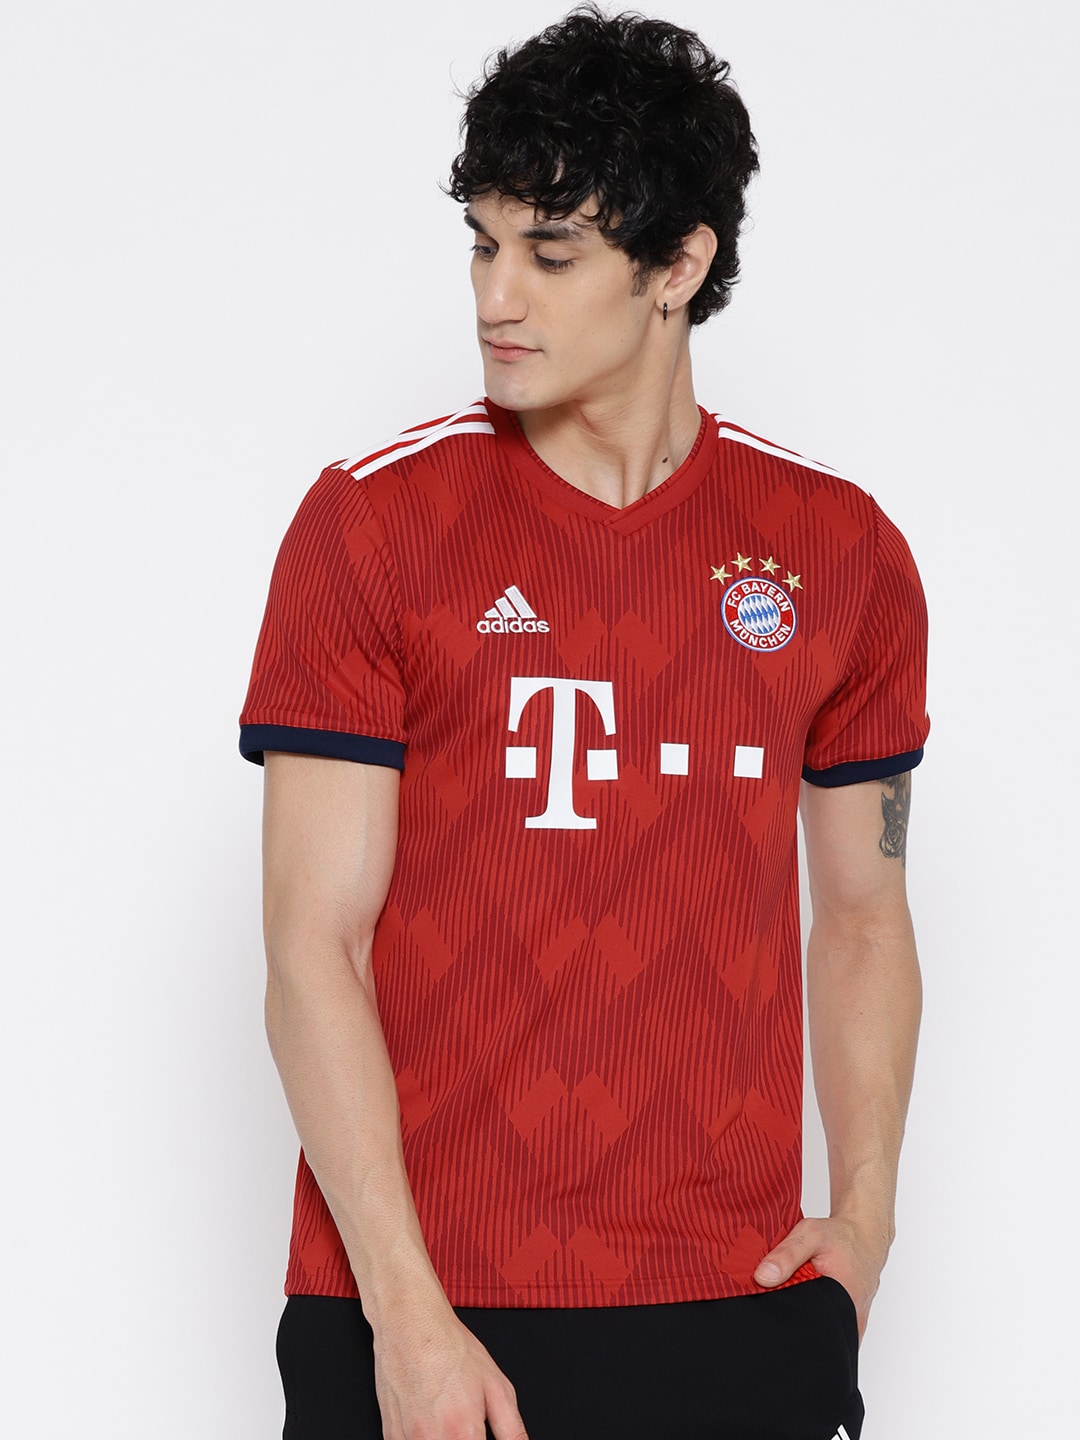 c6cf7651443 Adidas Sports Jersey - Buy Adidas Sports Jersey online in India